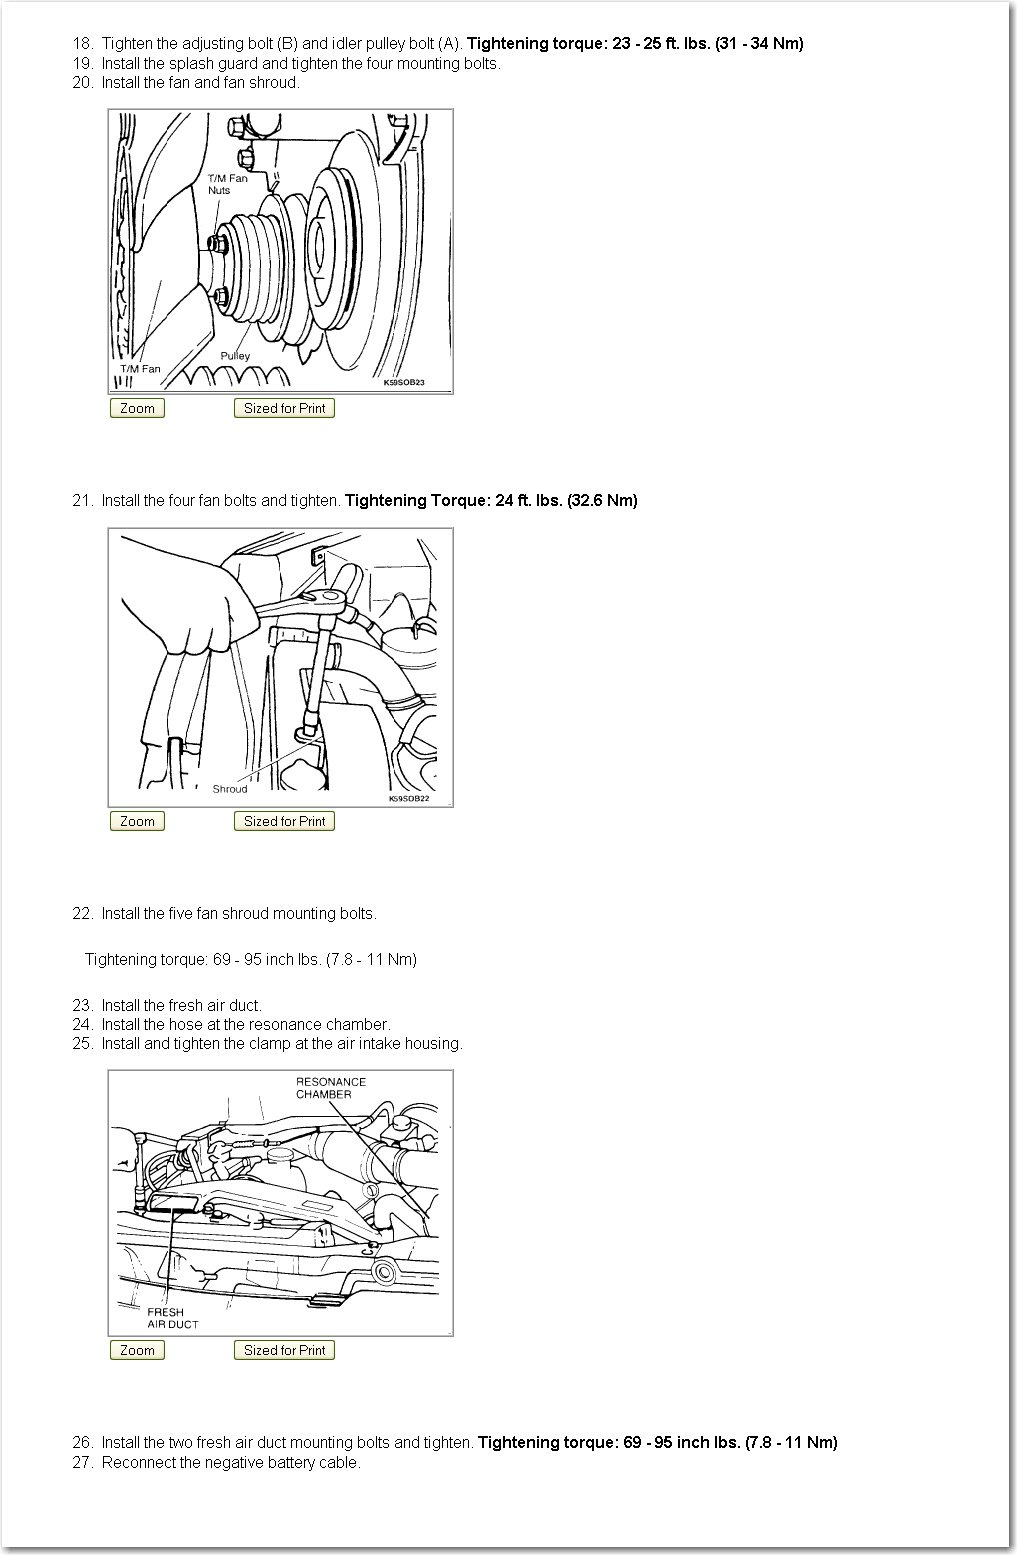 I Want To Change Timing Belt And I Need Timing Diagram For